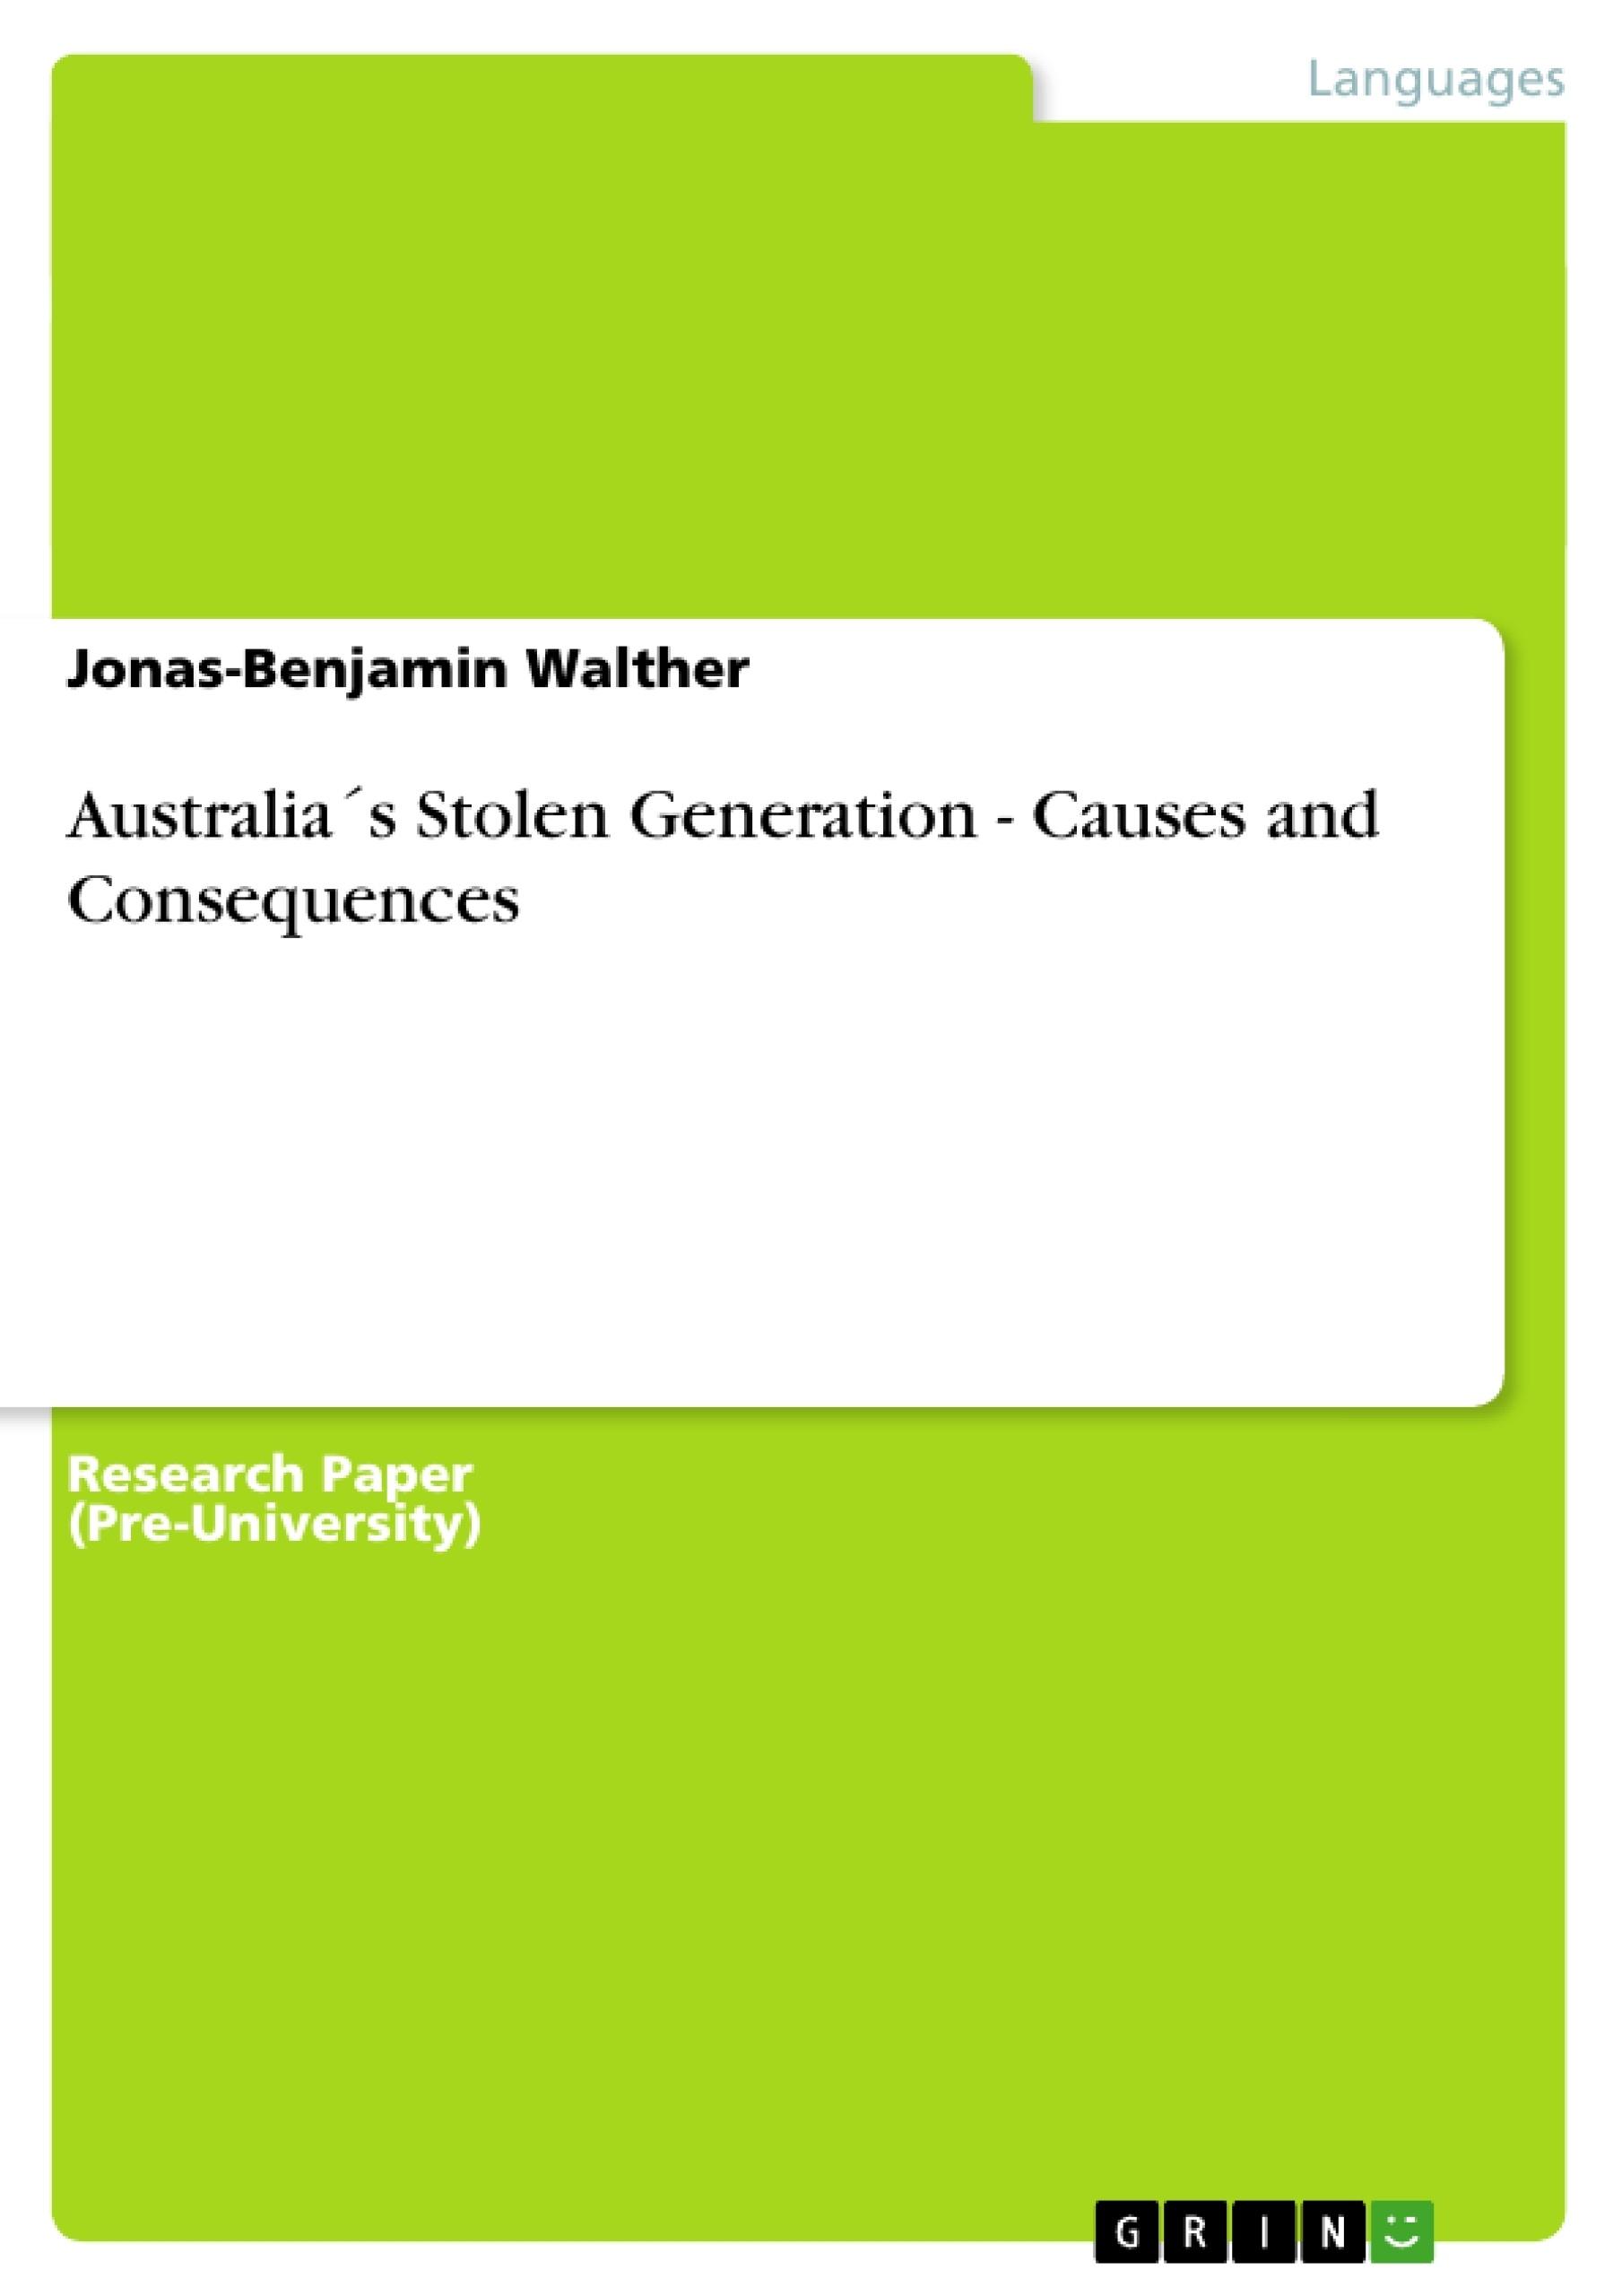 acute s stolen generation causes and consequences acutes stolen generation causes and consequences publizieren